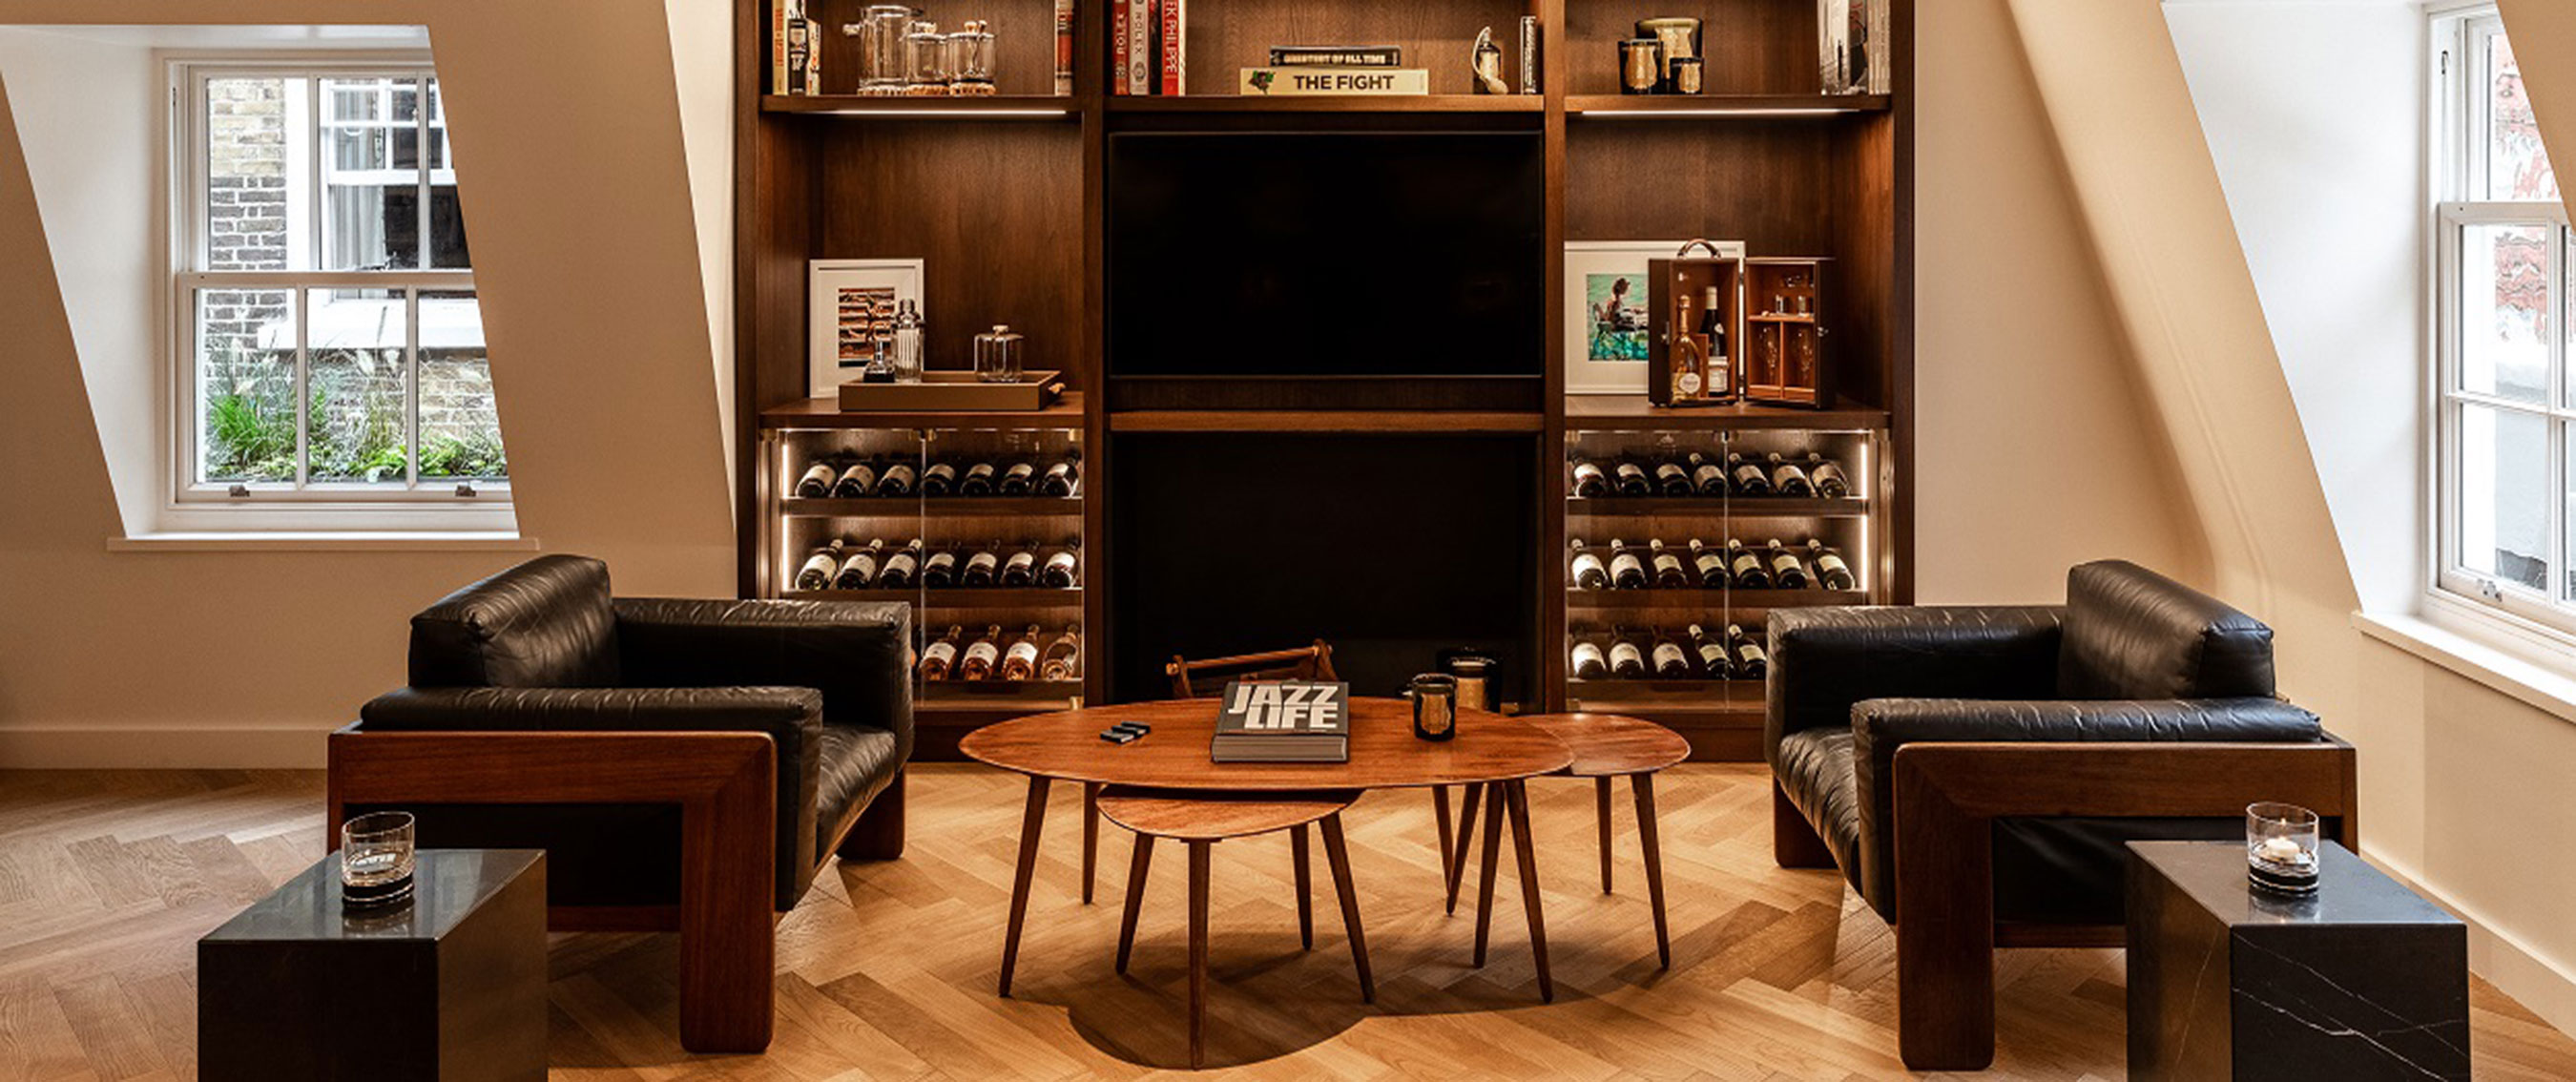 The new Thom Sweeney townhouse is more than just a shop